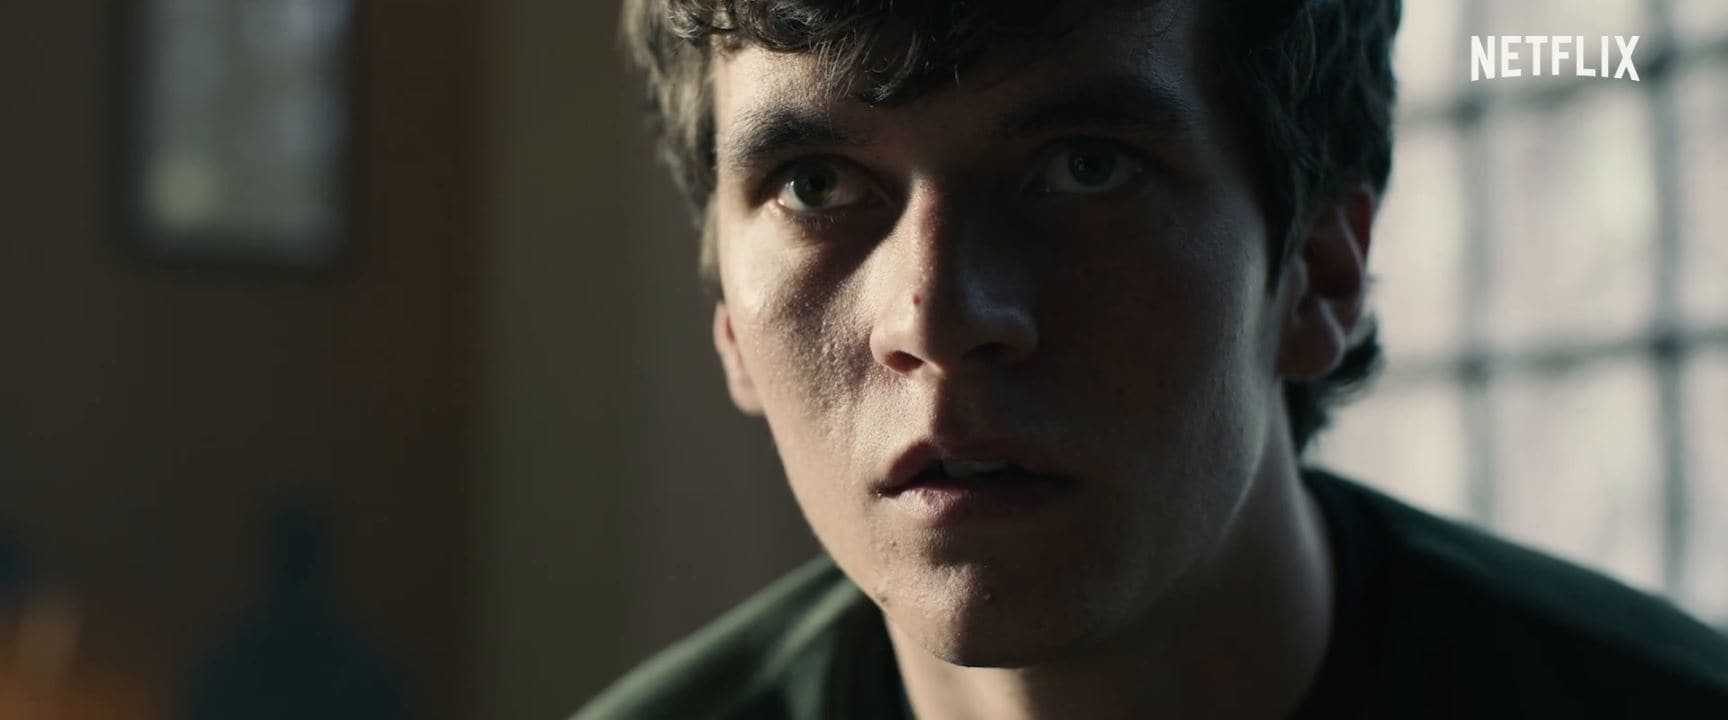 Shorty: Black Mirror – Bandersnatch